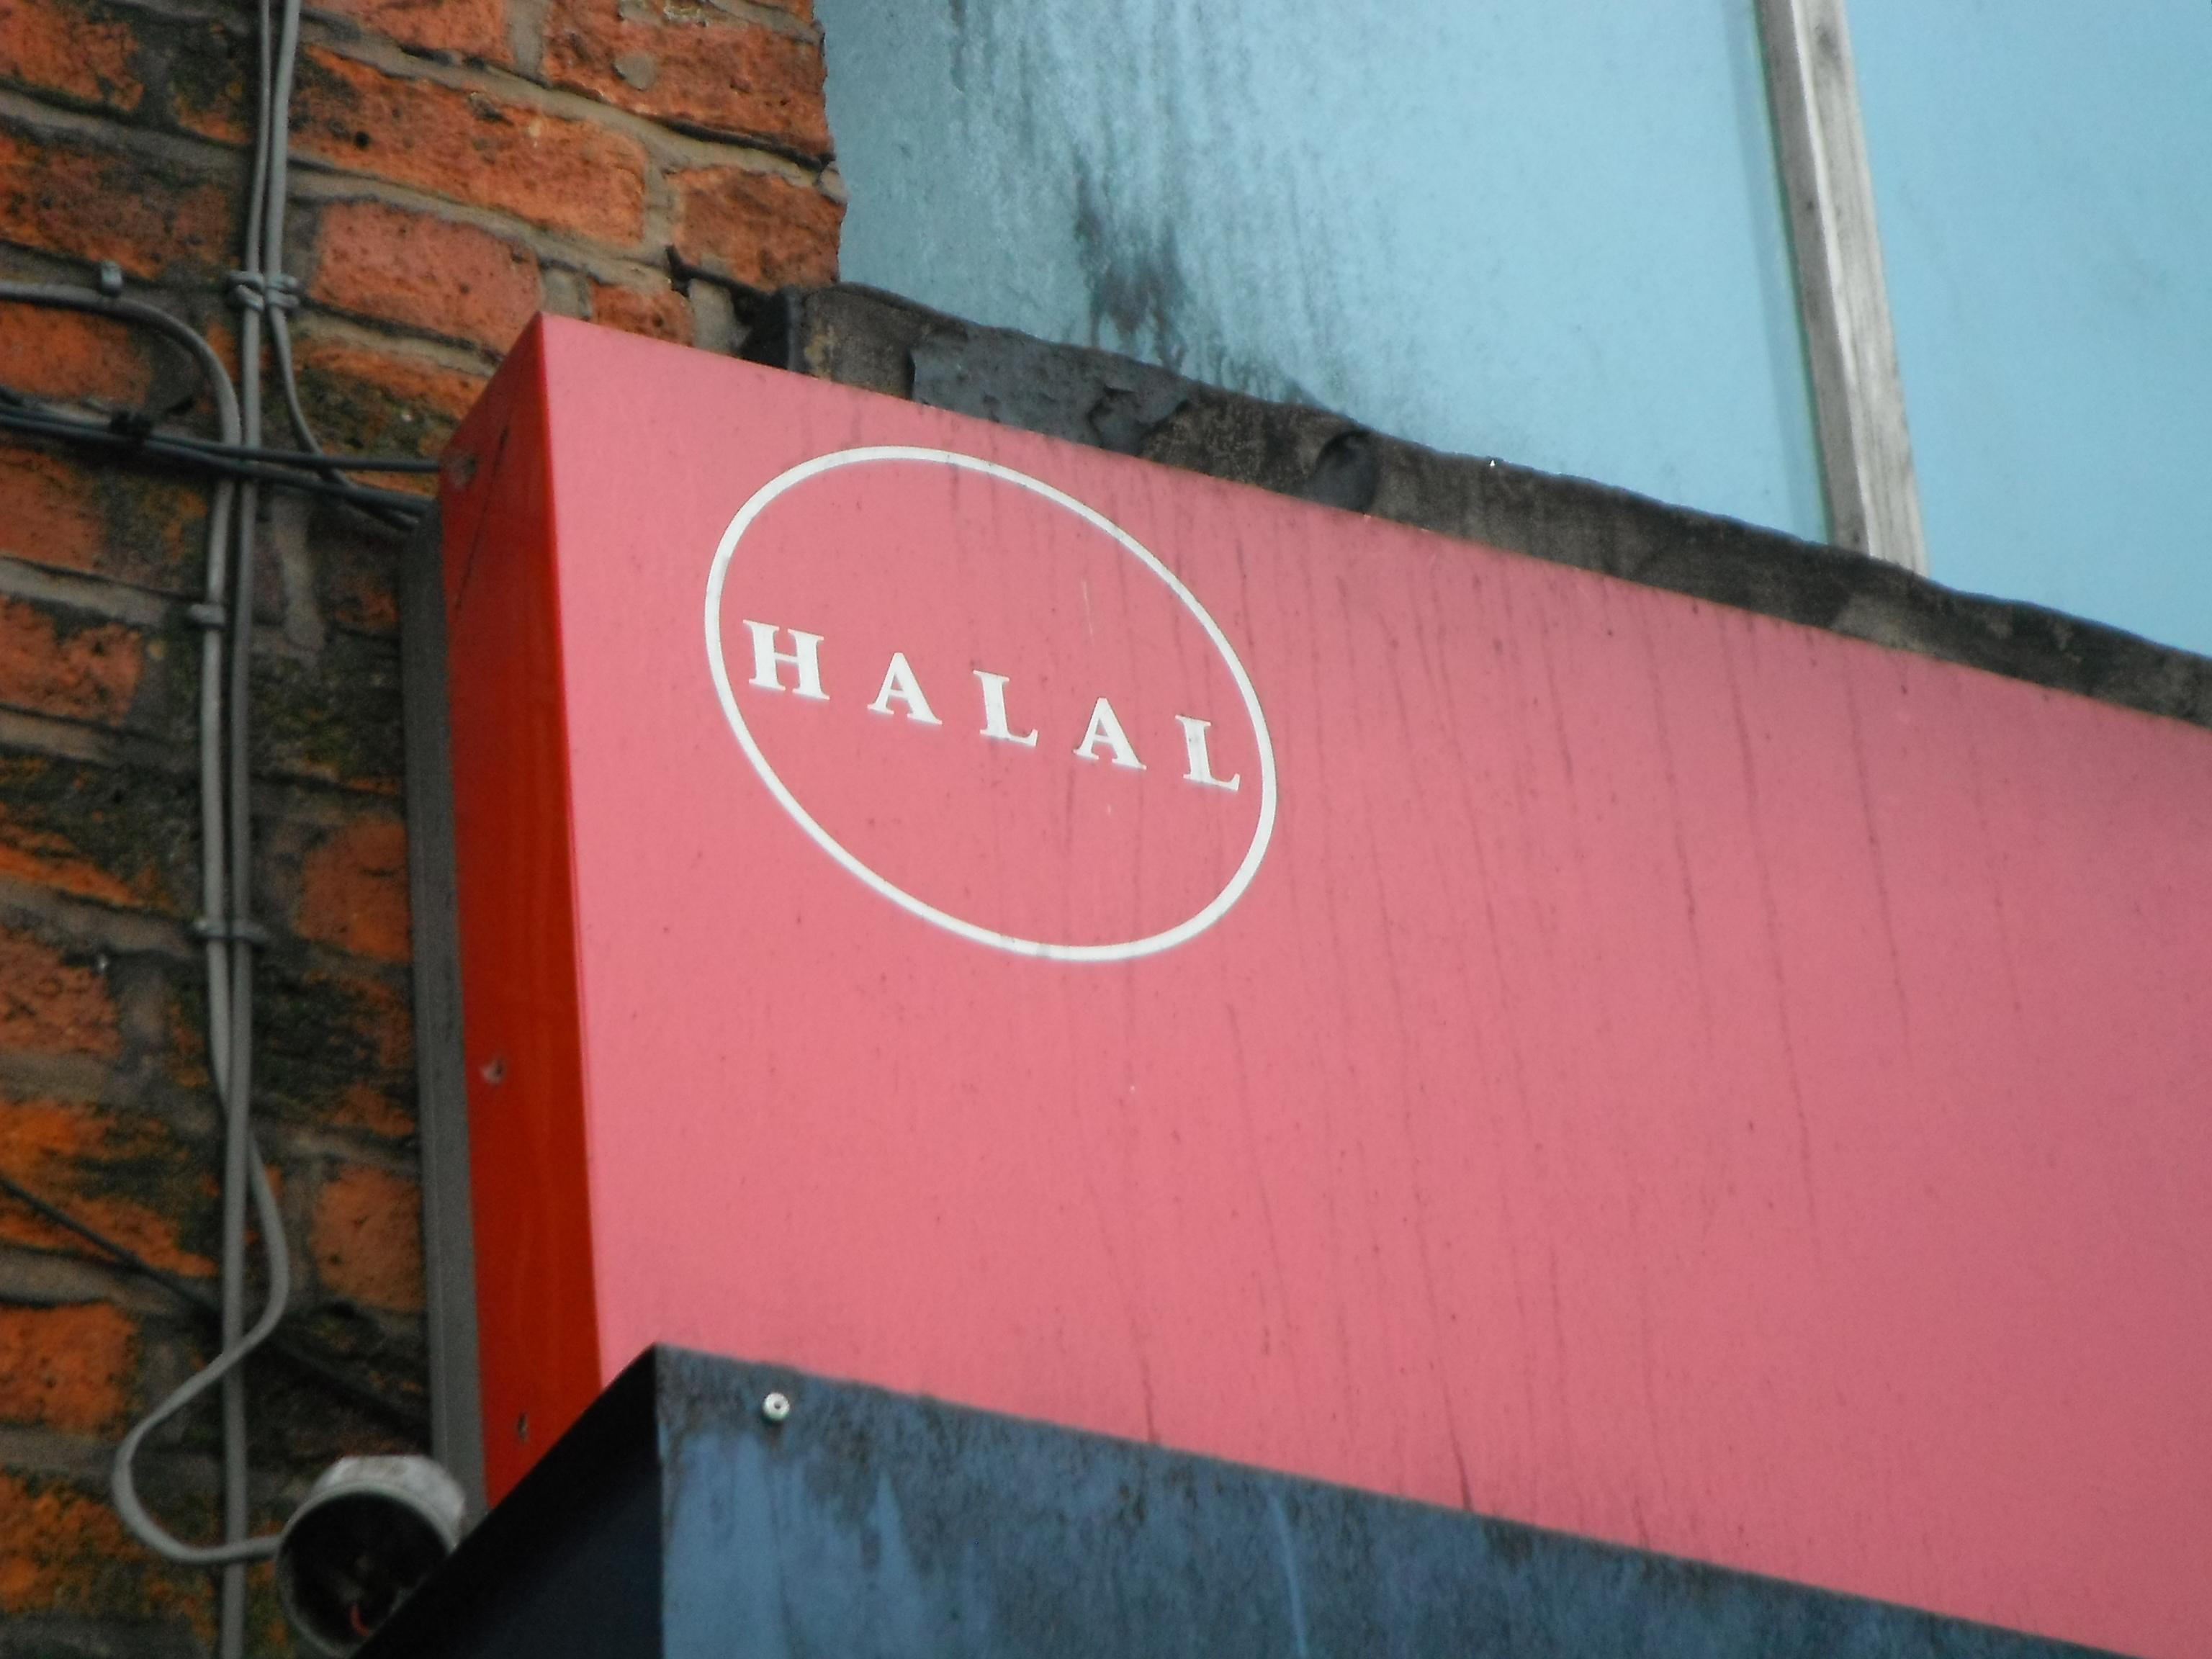 Photo taken by me – Halal food sign outside a Manchester restaurant